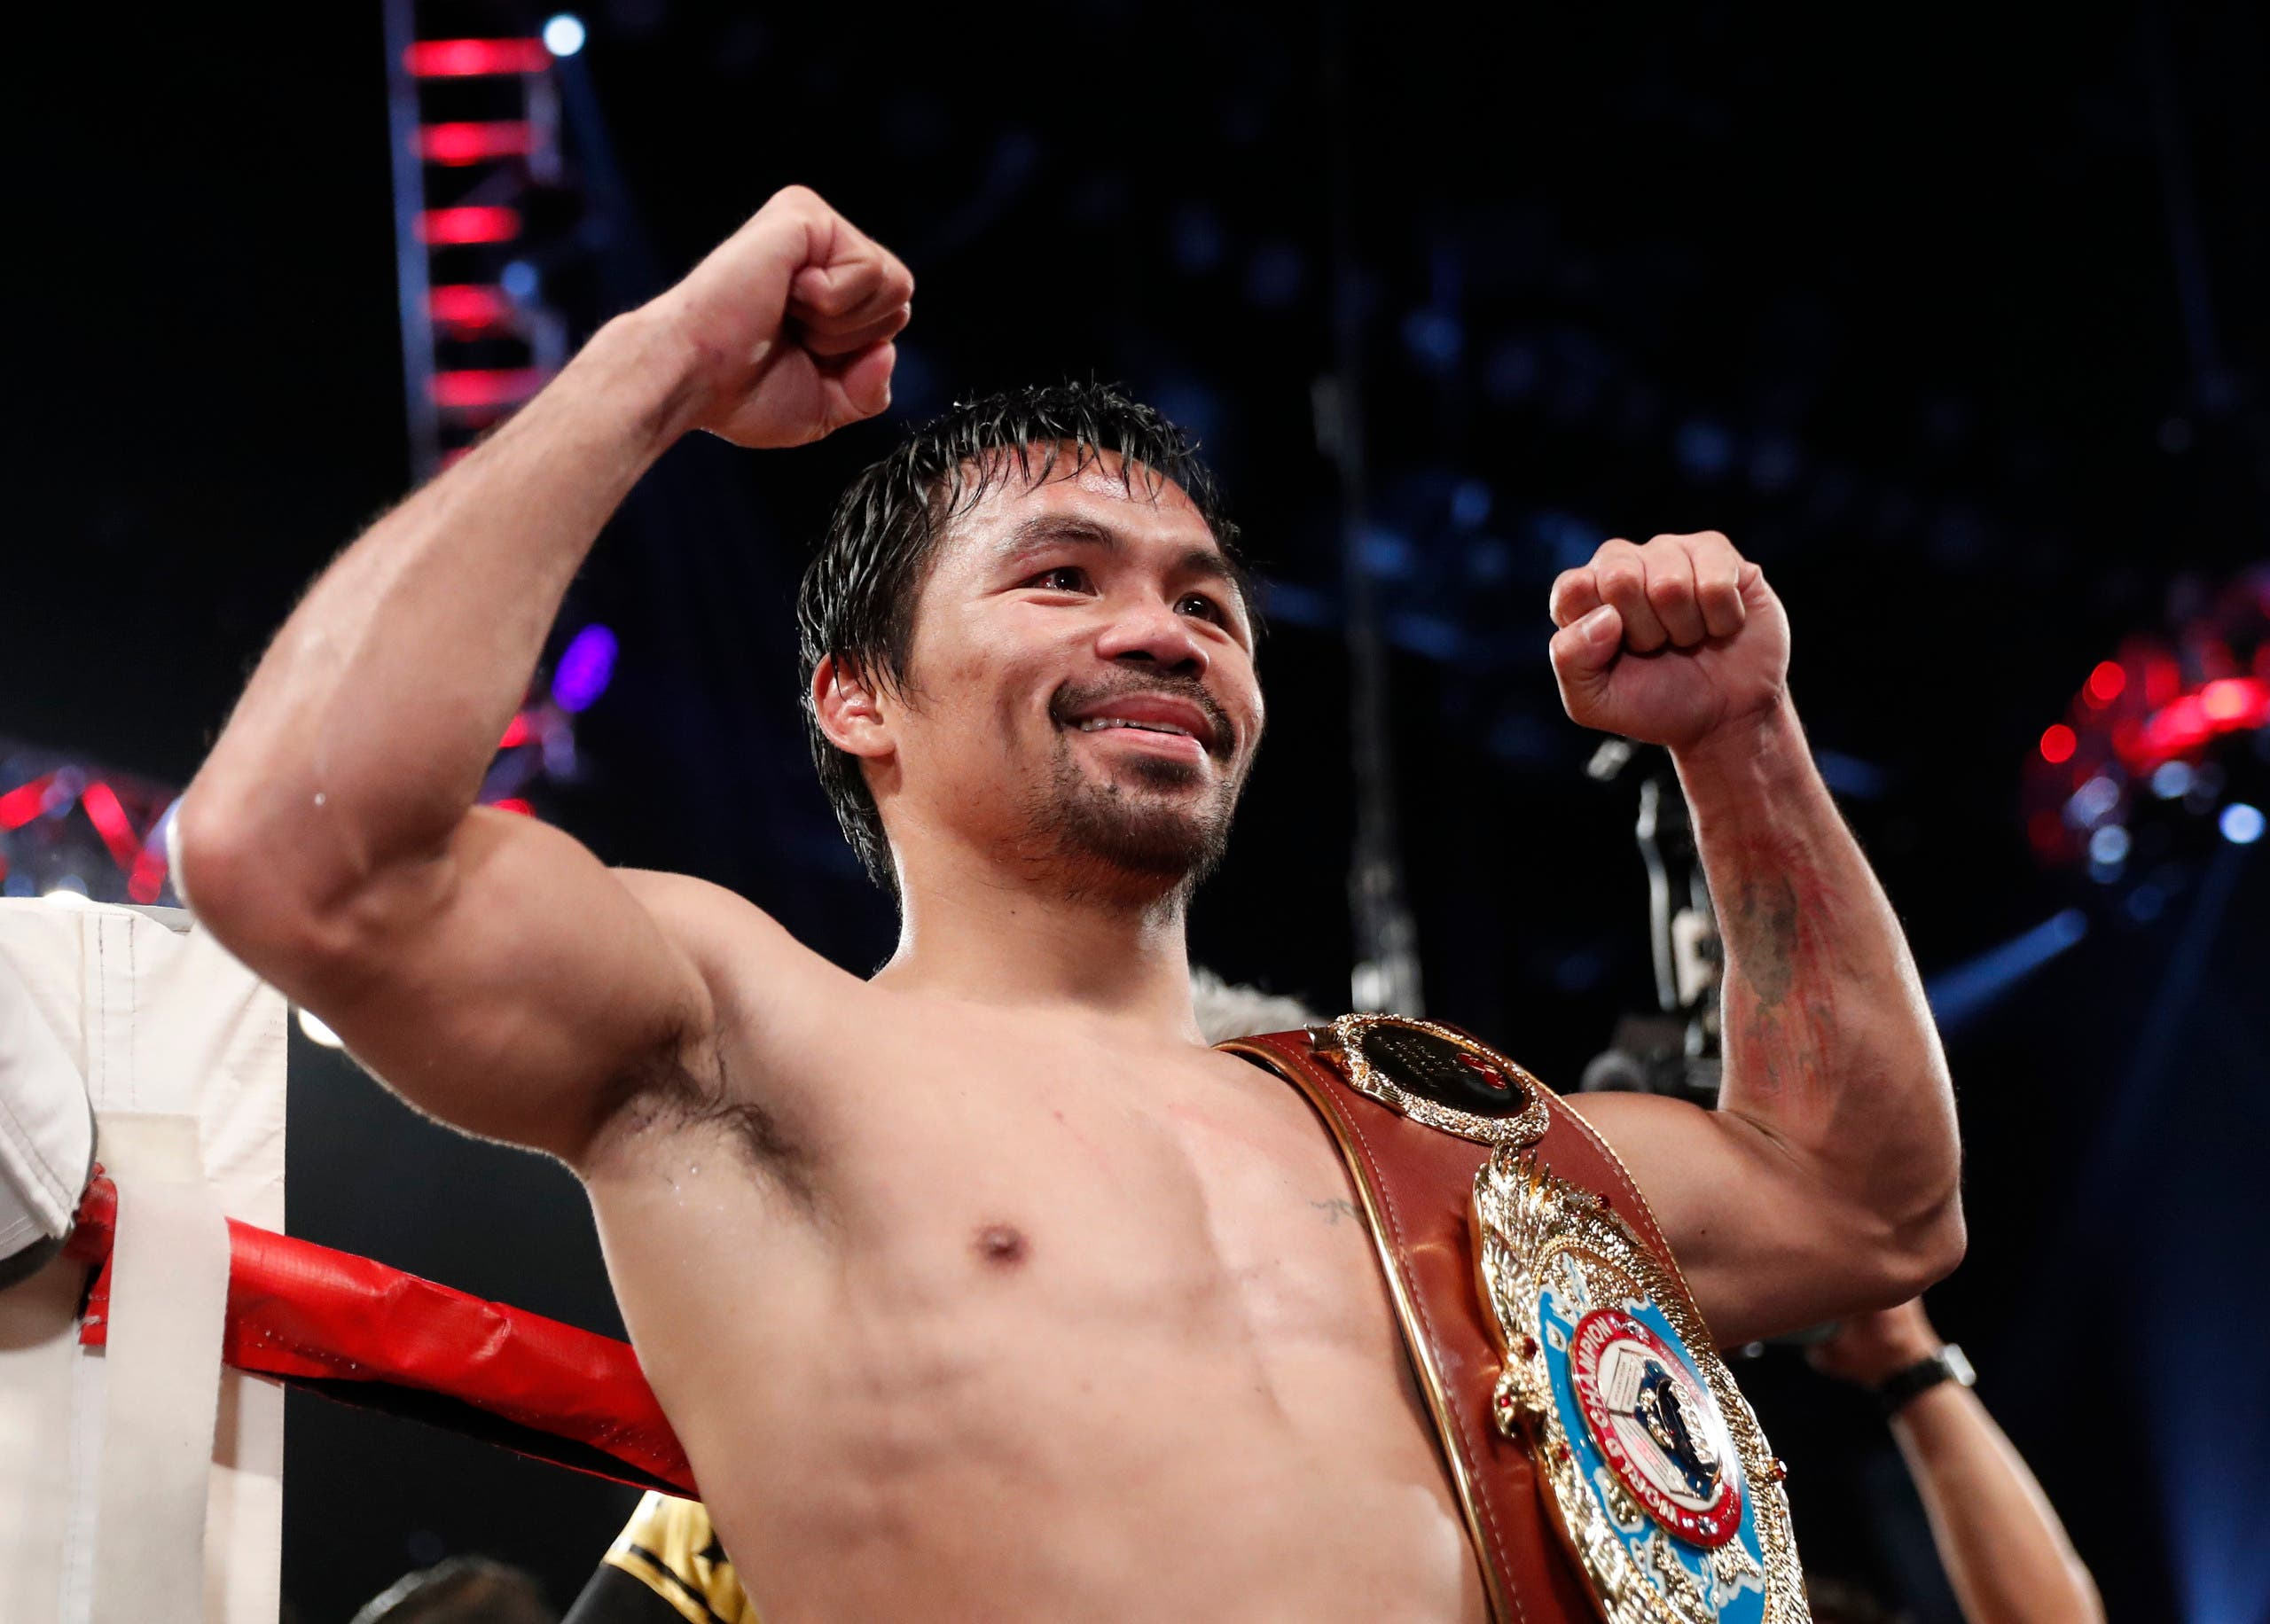 Manny Pacquiao after beating Jessie Vargas in the WBO welterweight bout in Las Vegas on Saturday, November 5, 2016. (AP)